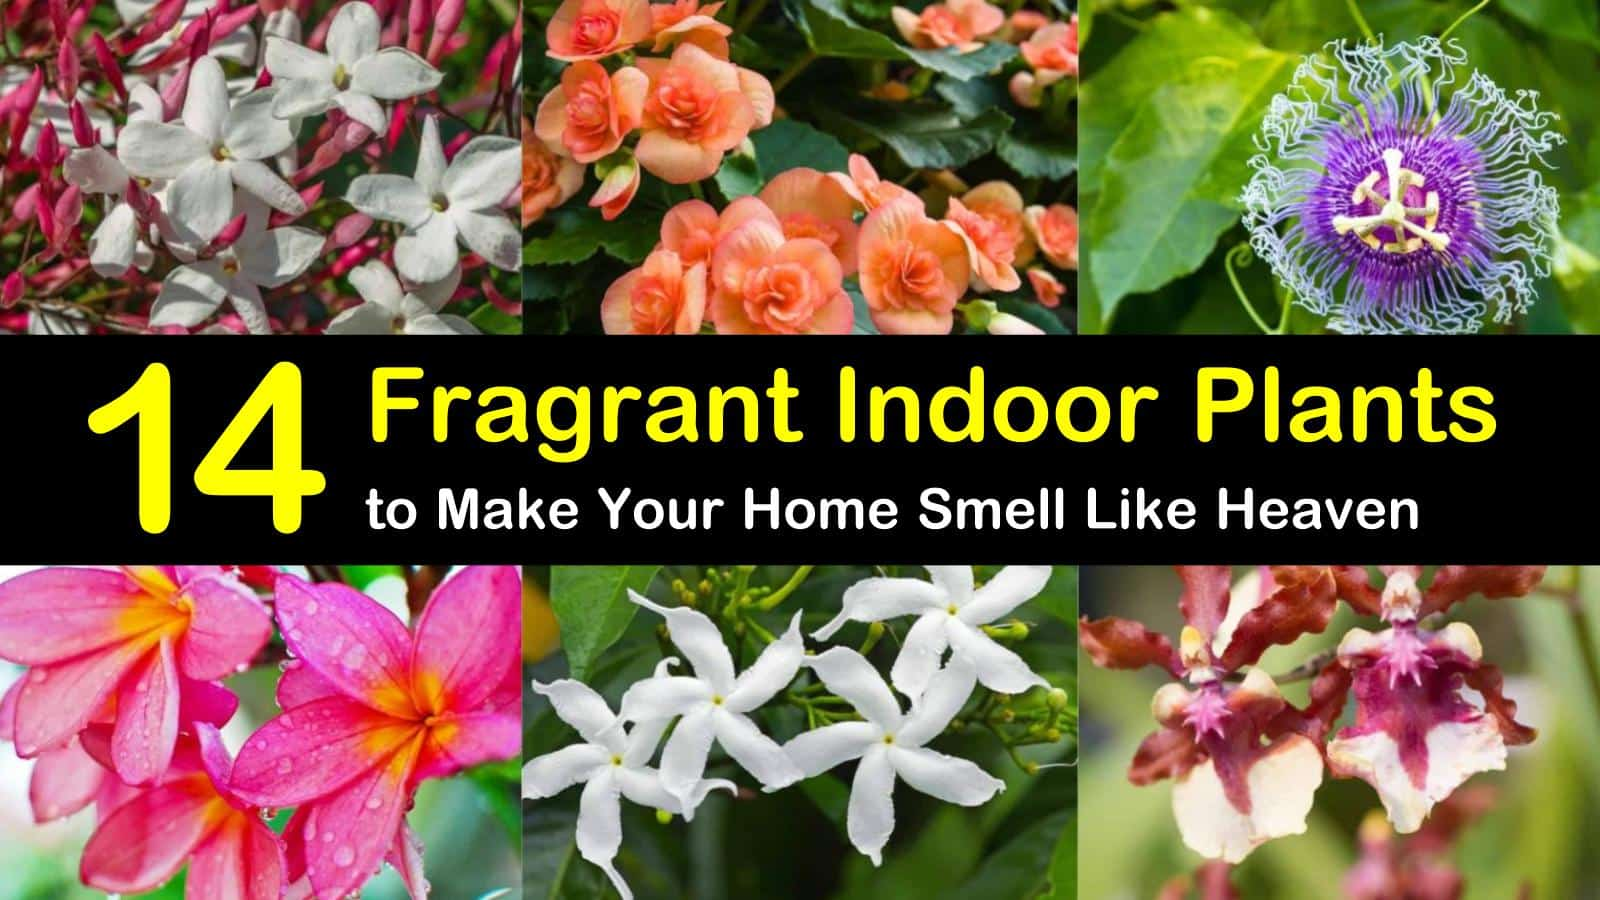 fragrant indoor plants titleimg1